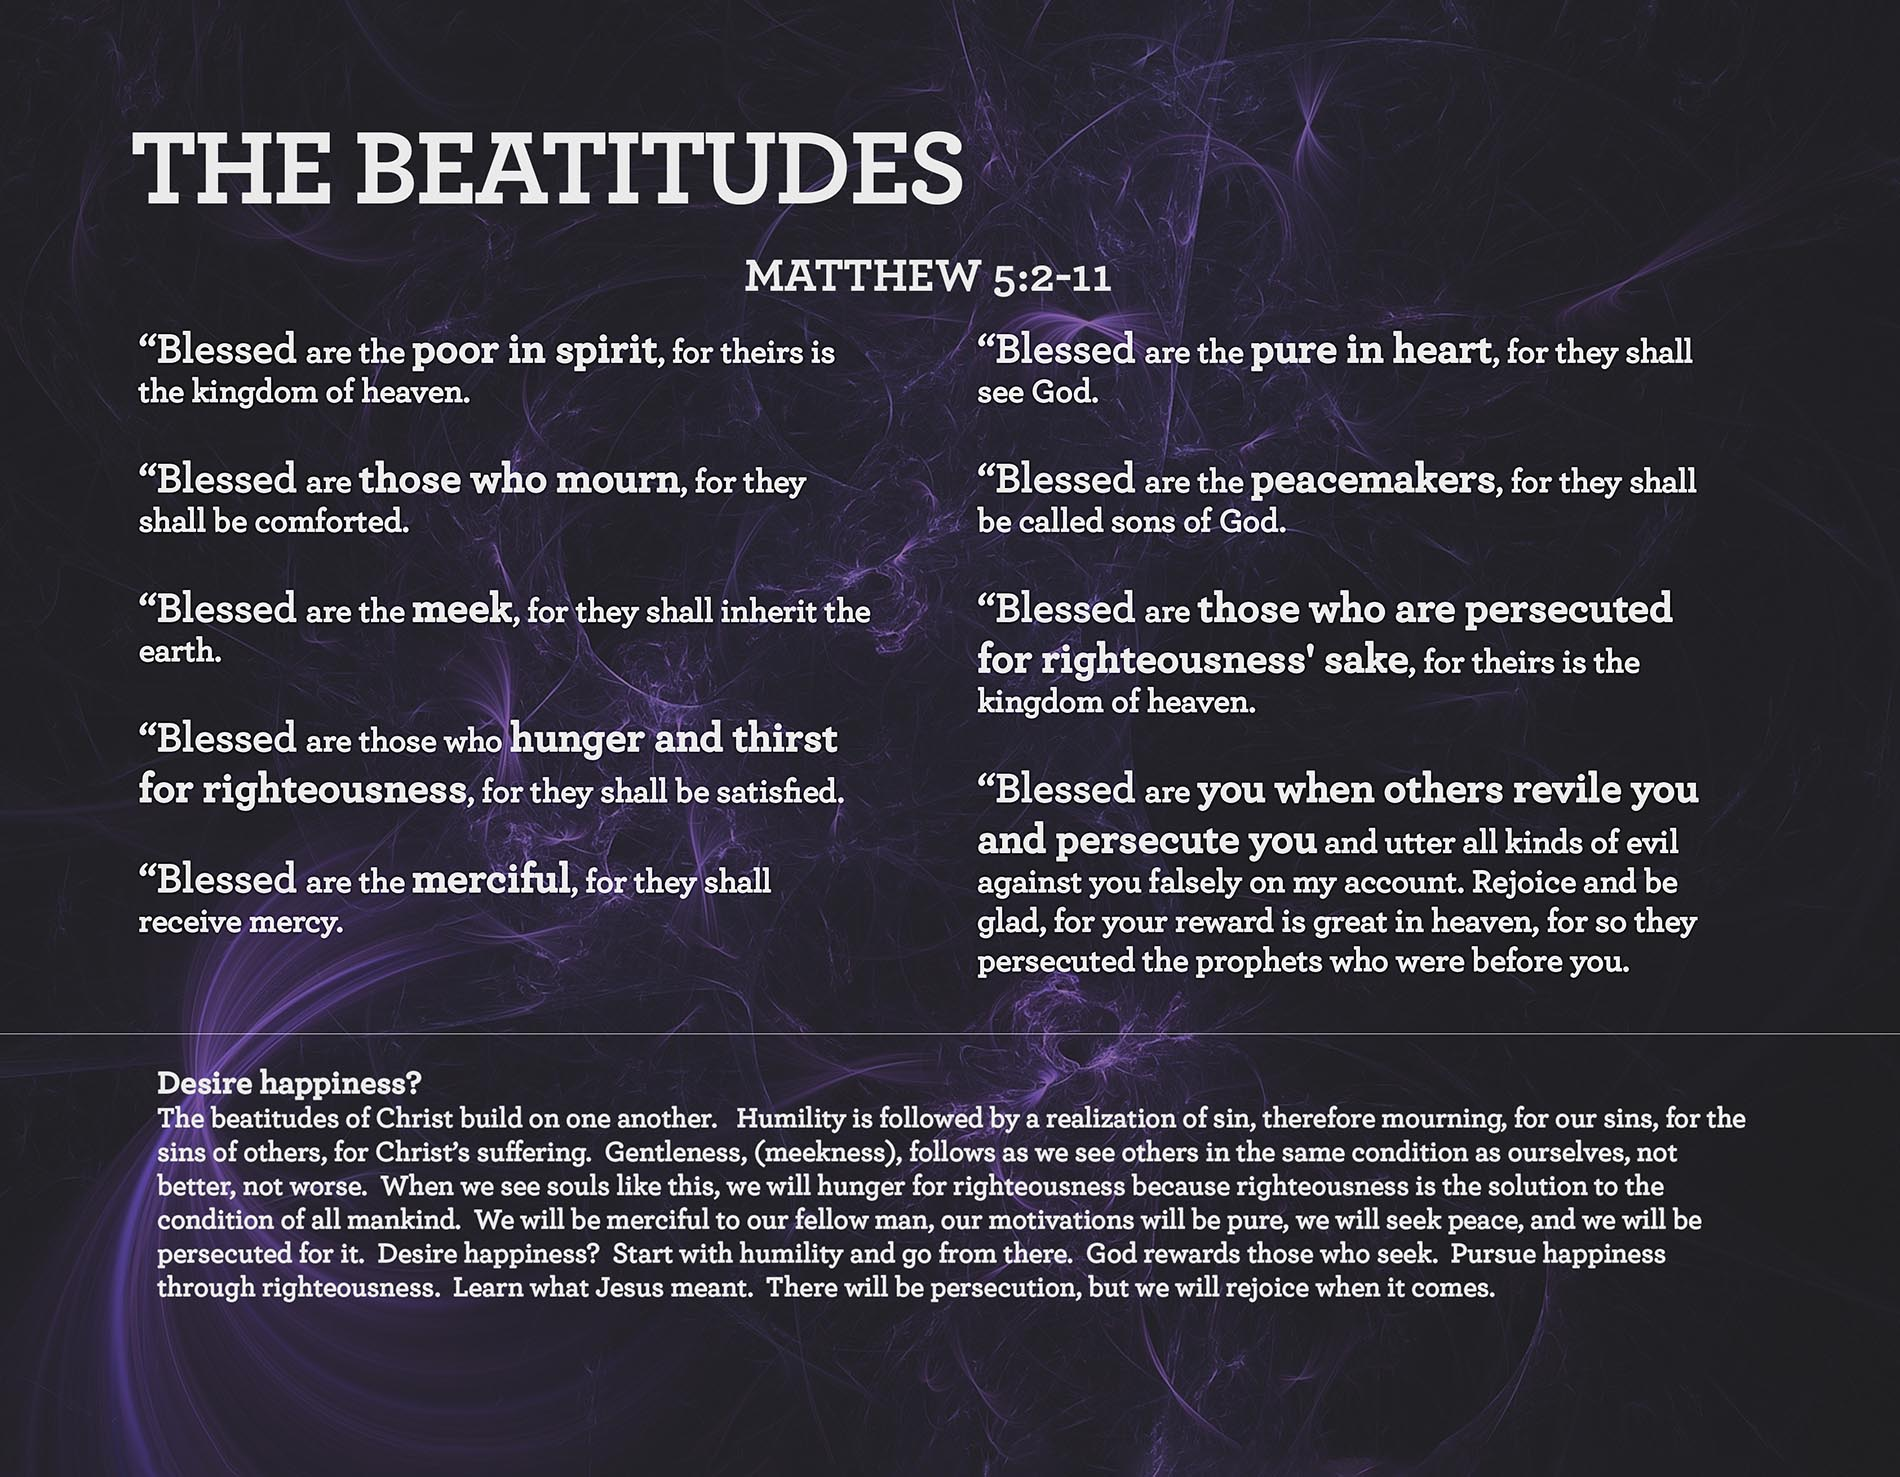 THE BEATITUDES Matthew 5:2-11